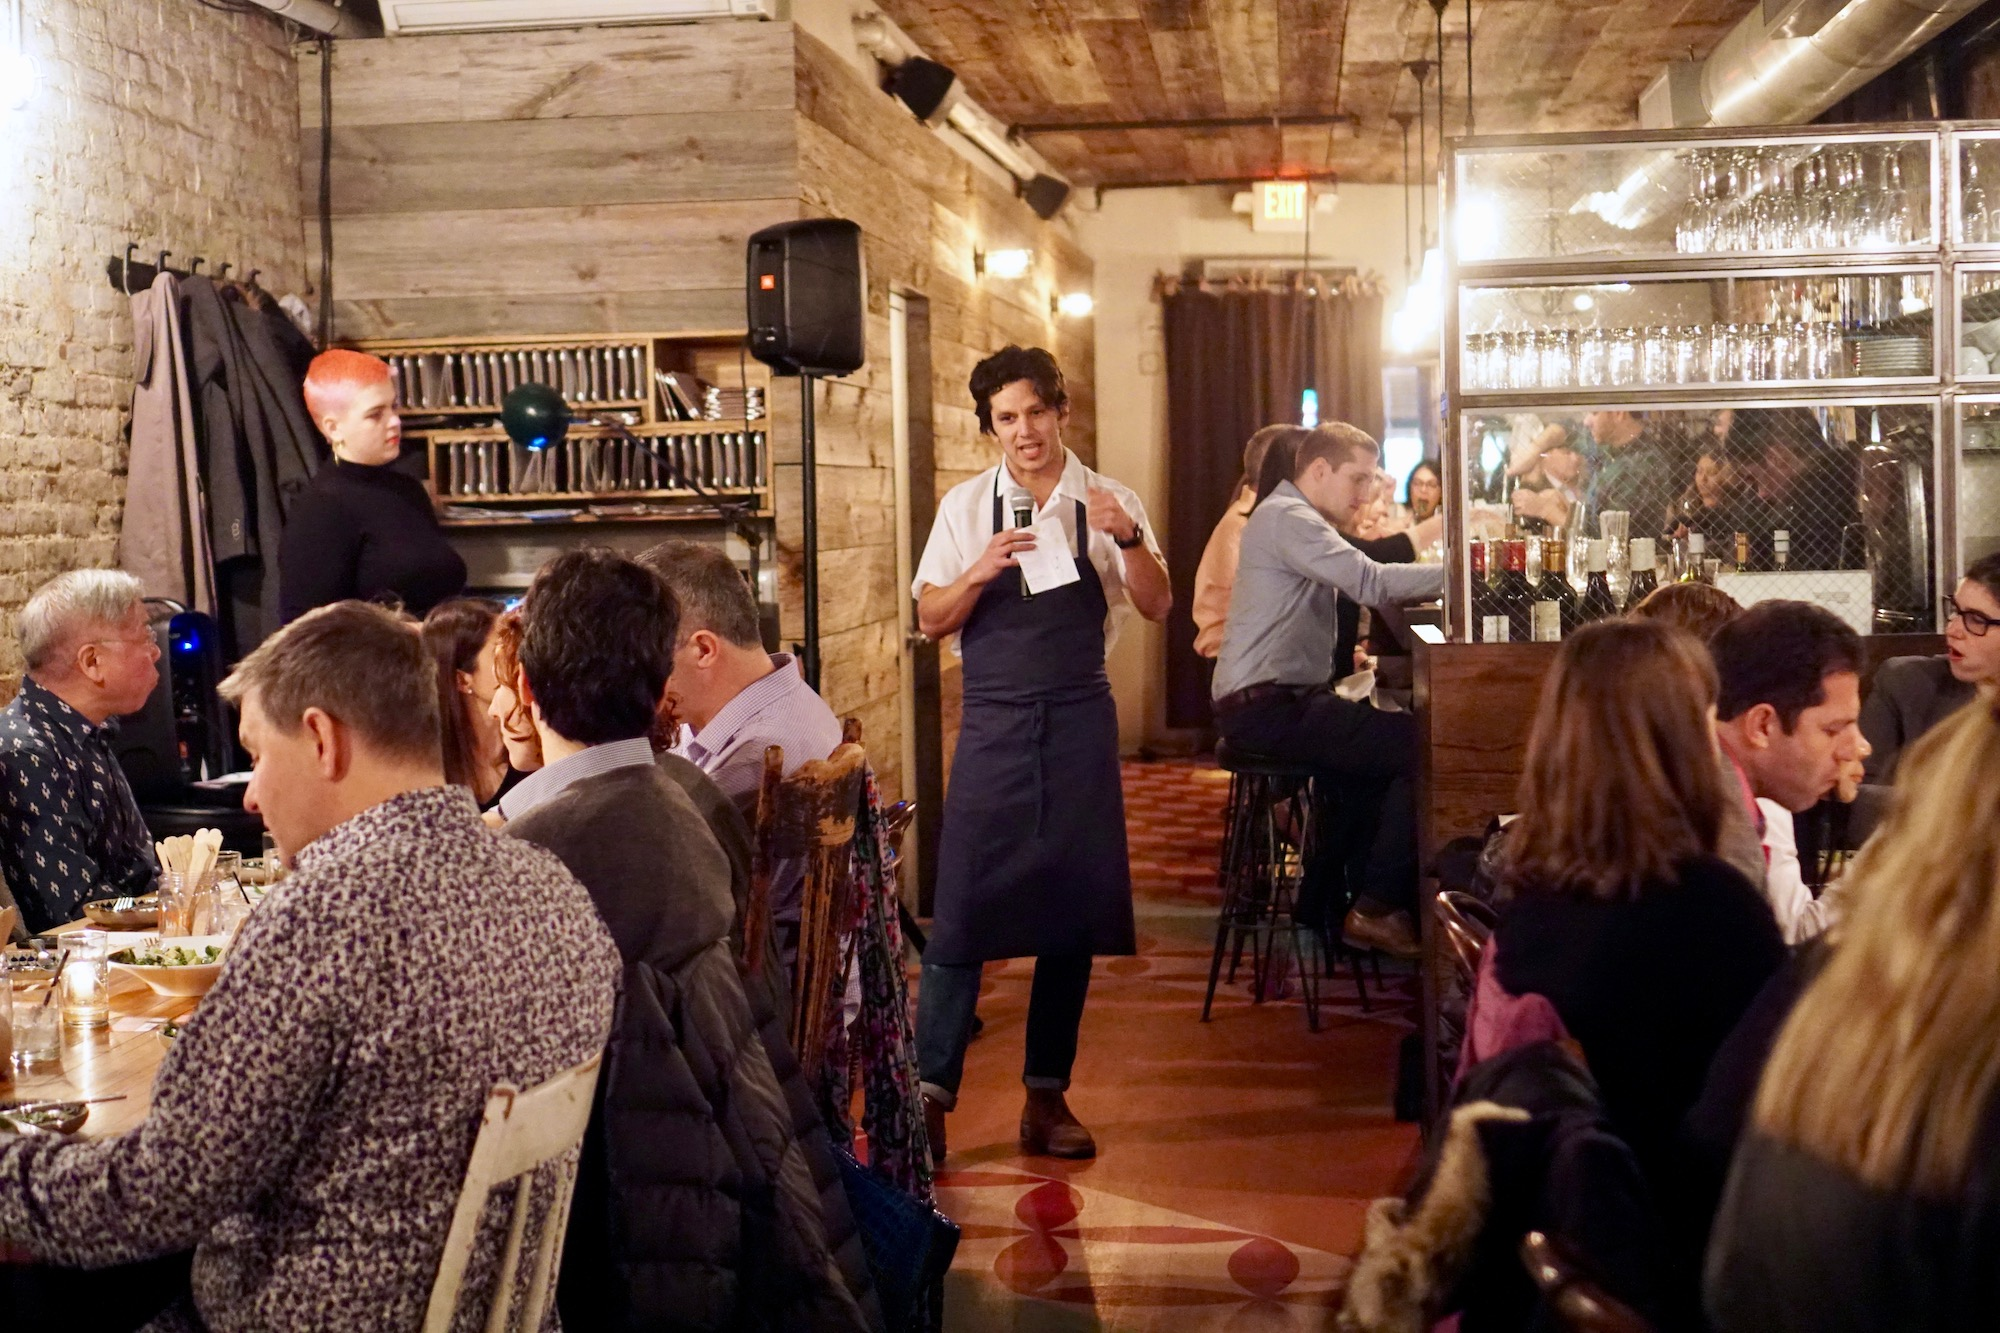 A chef talks to a room of diners at a private dinner, while holding a microphone.